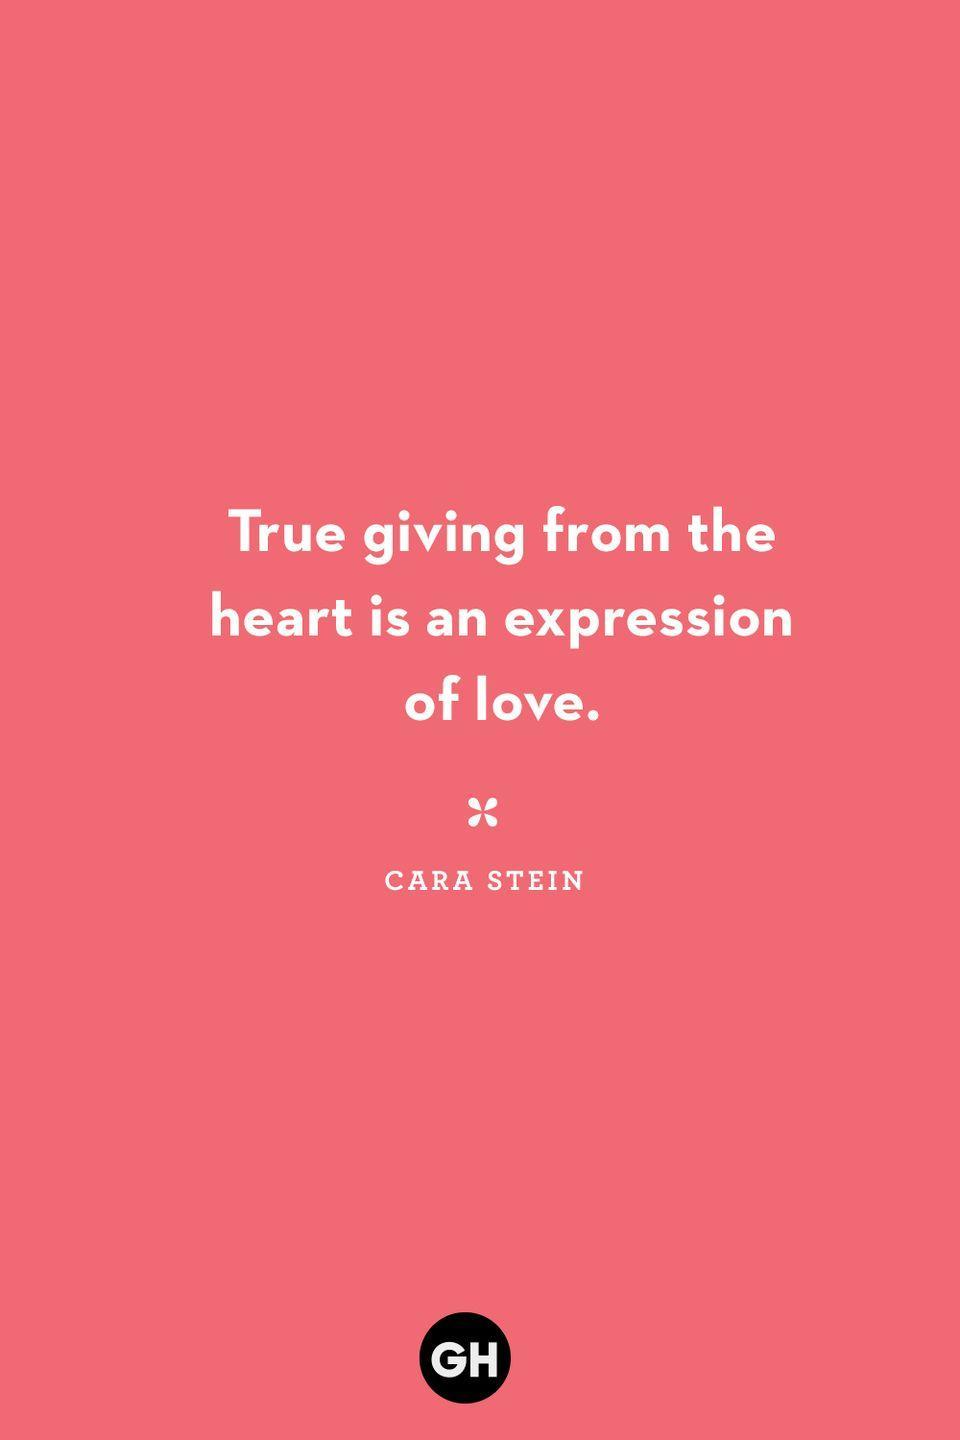 <p>True giving from the heart is an expression of love.</p>